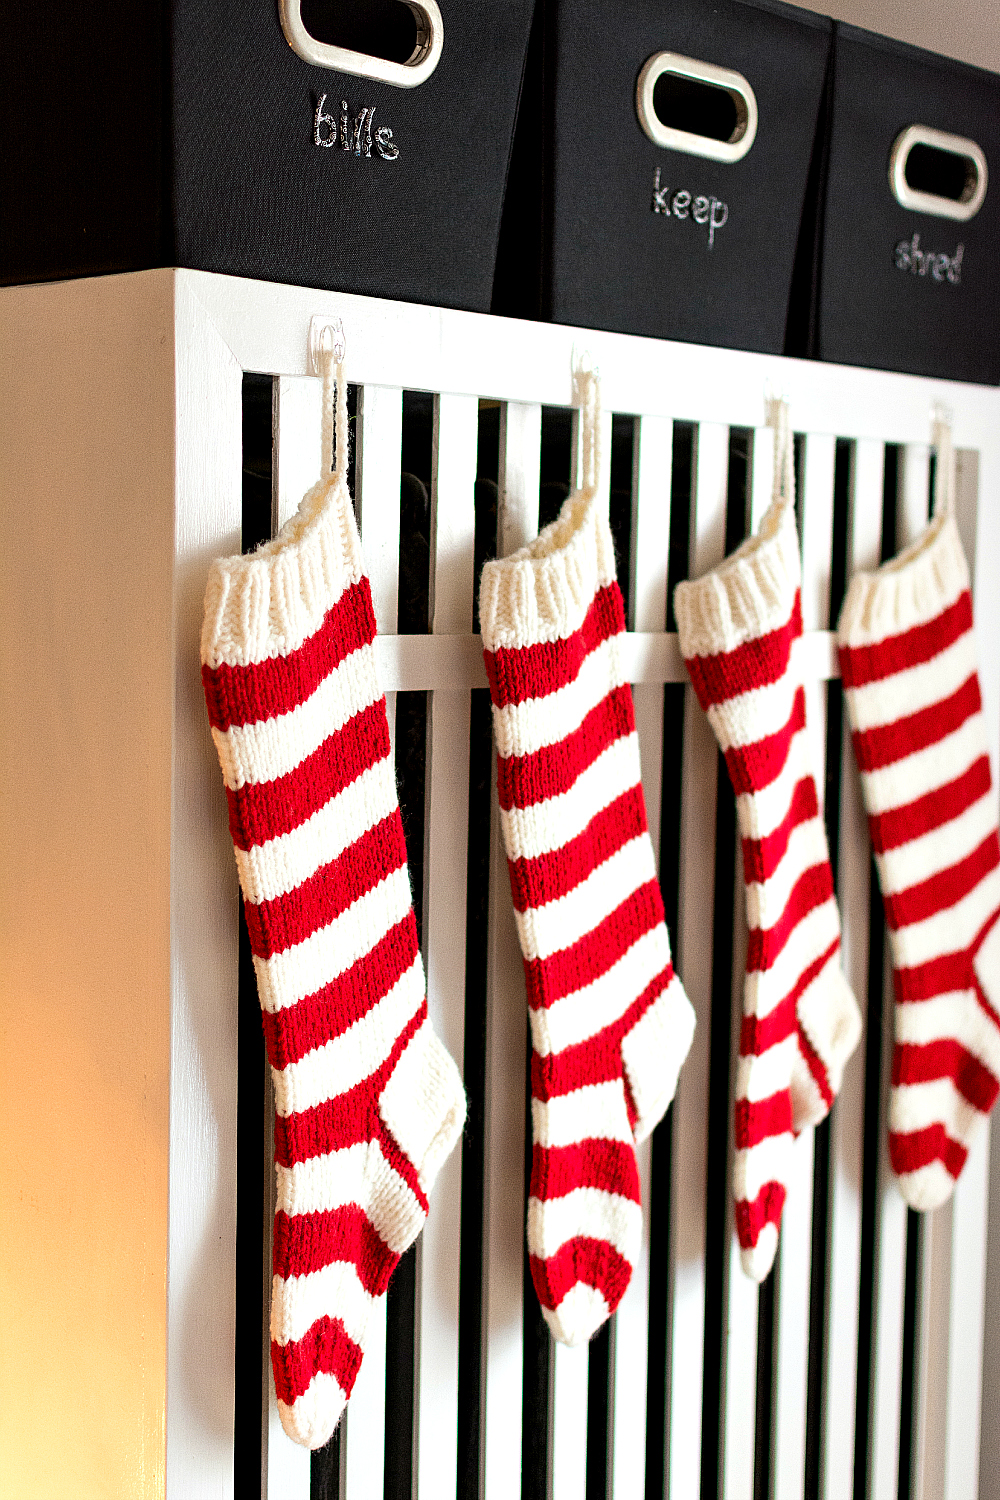 Christmas-Mantel-Red-White-Striped-Stockings-Radiator Cover.jpg 1